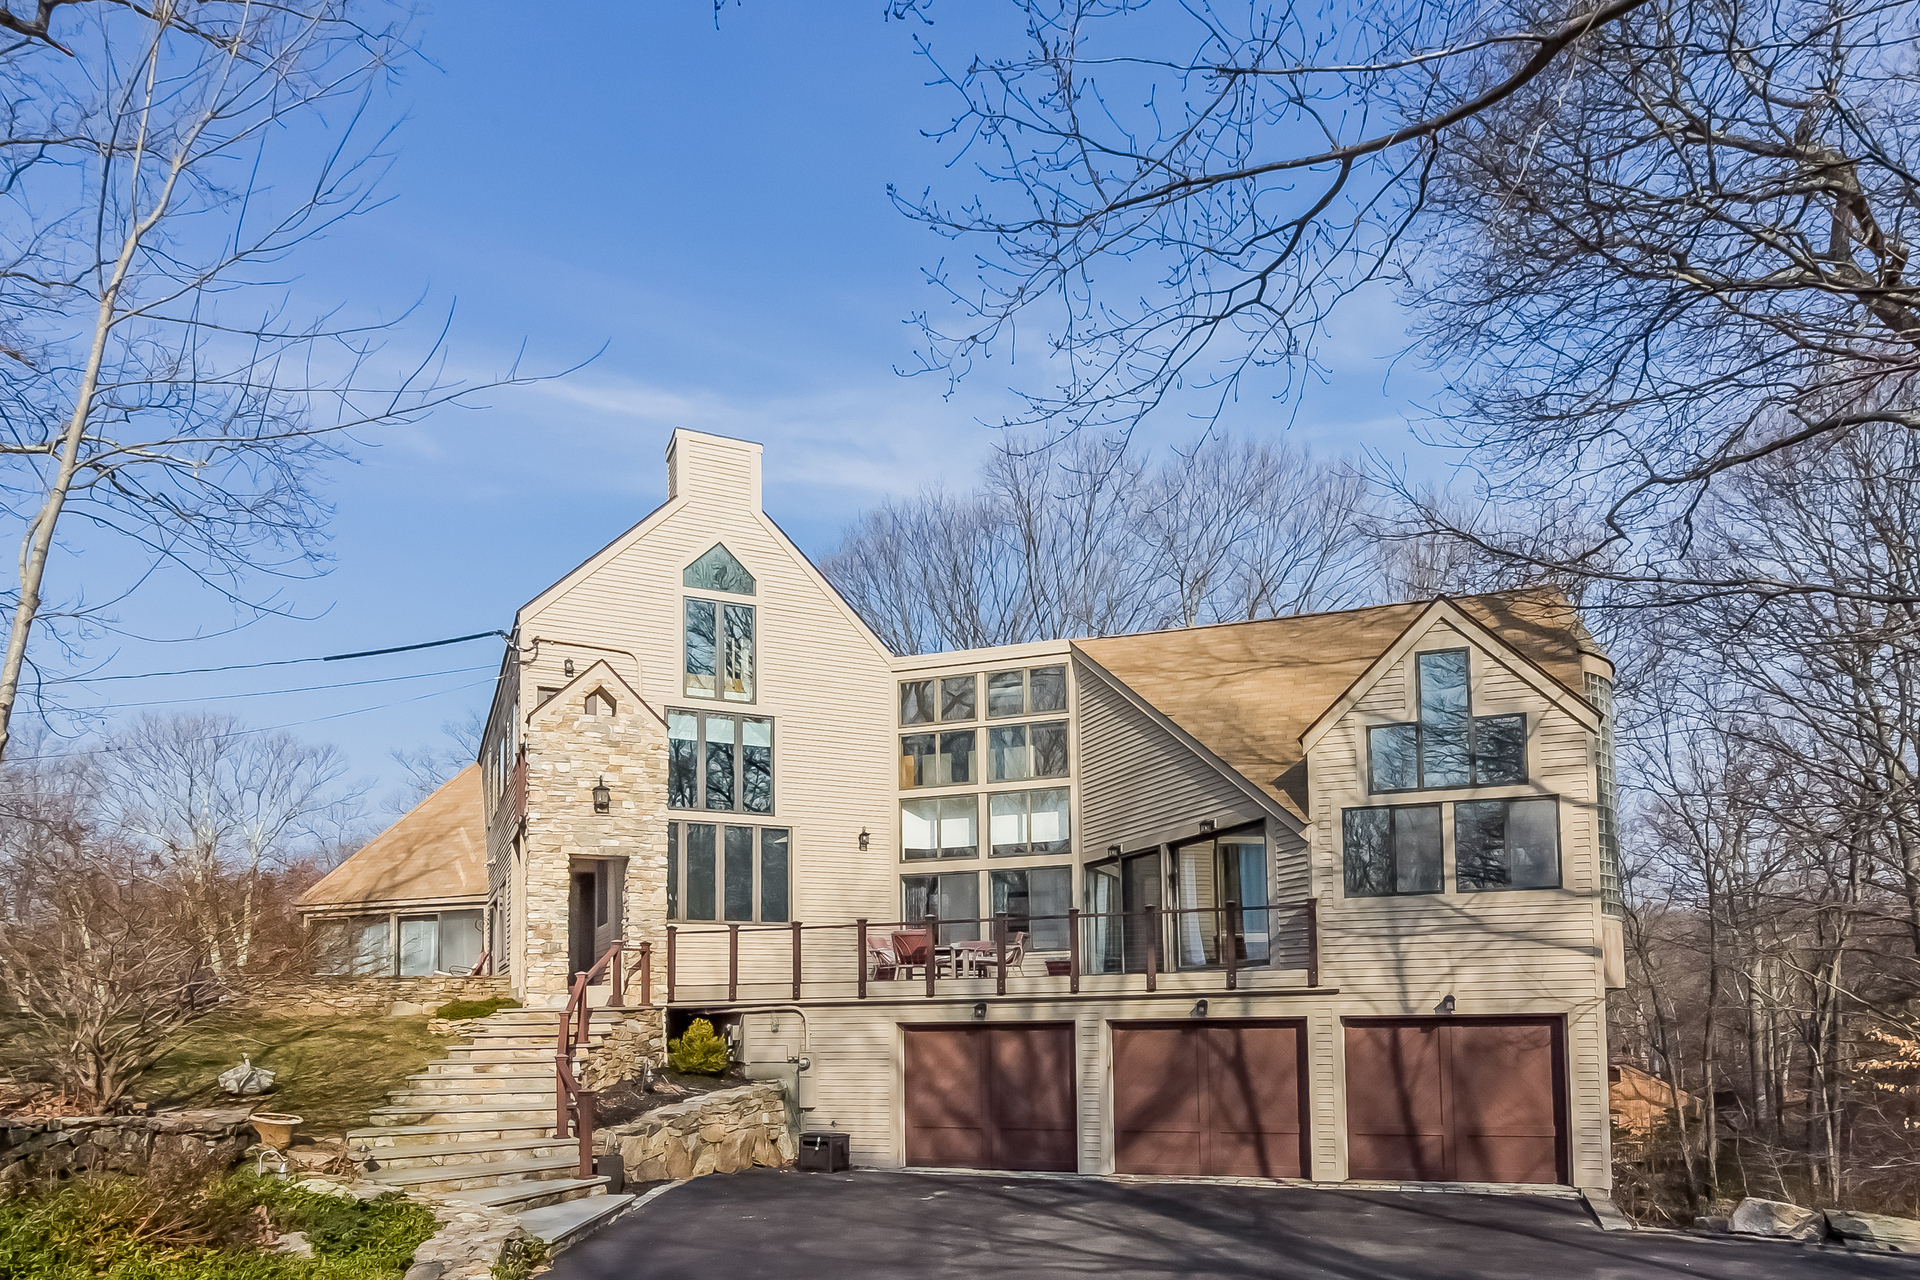 Single Family Home for Sale at Striking Contemporary 40 Denison Dr Guilford, Connecticut, 06437 United States